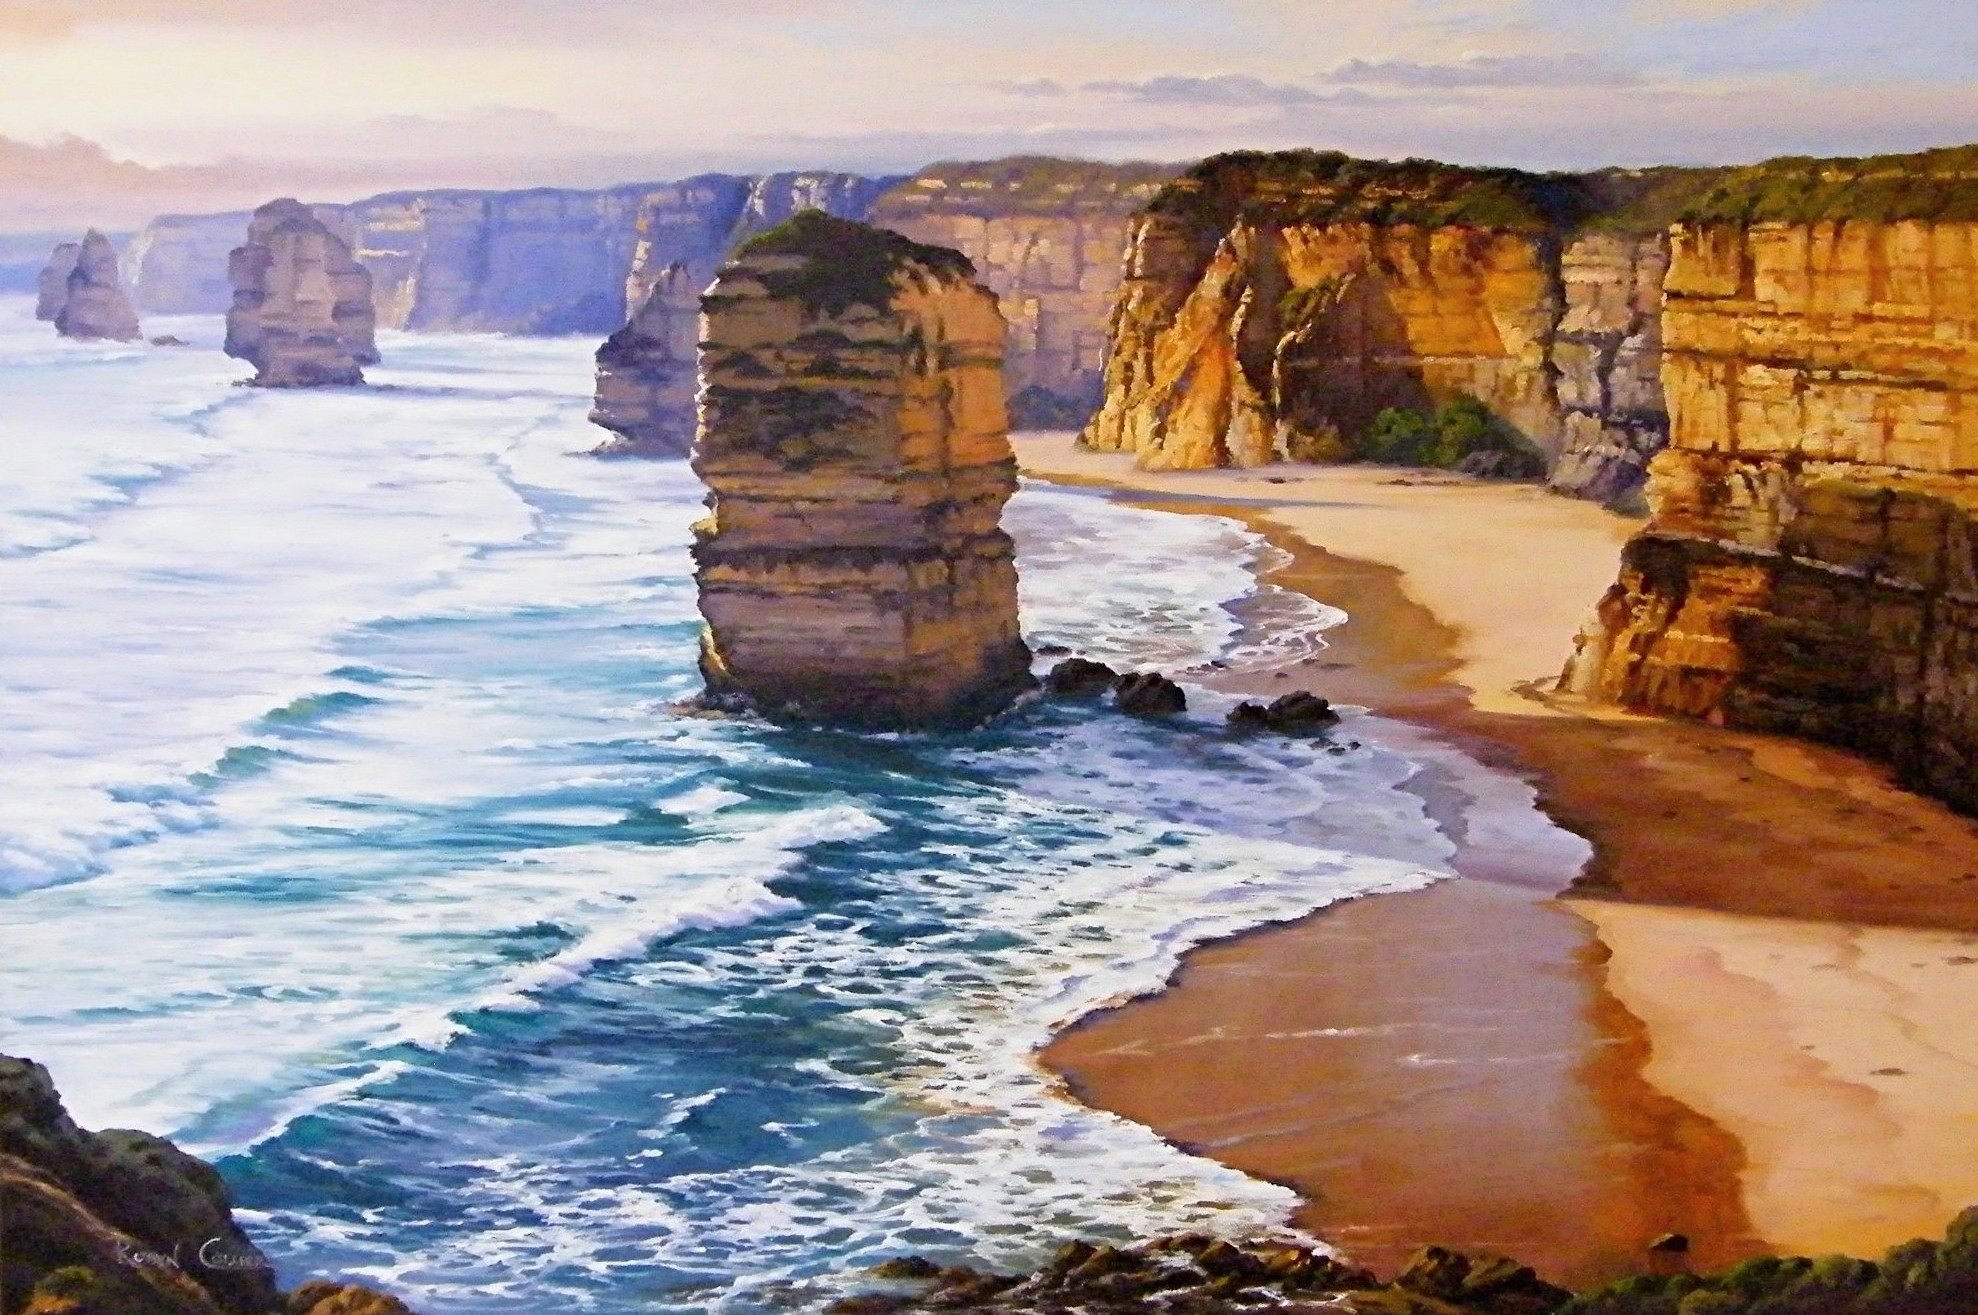 GREAT OCEAN ROAD – 15th-27th MARCH 2020